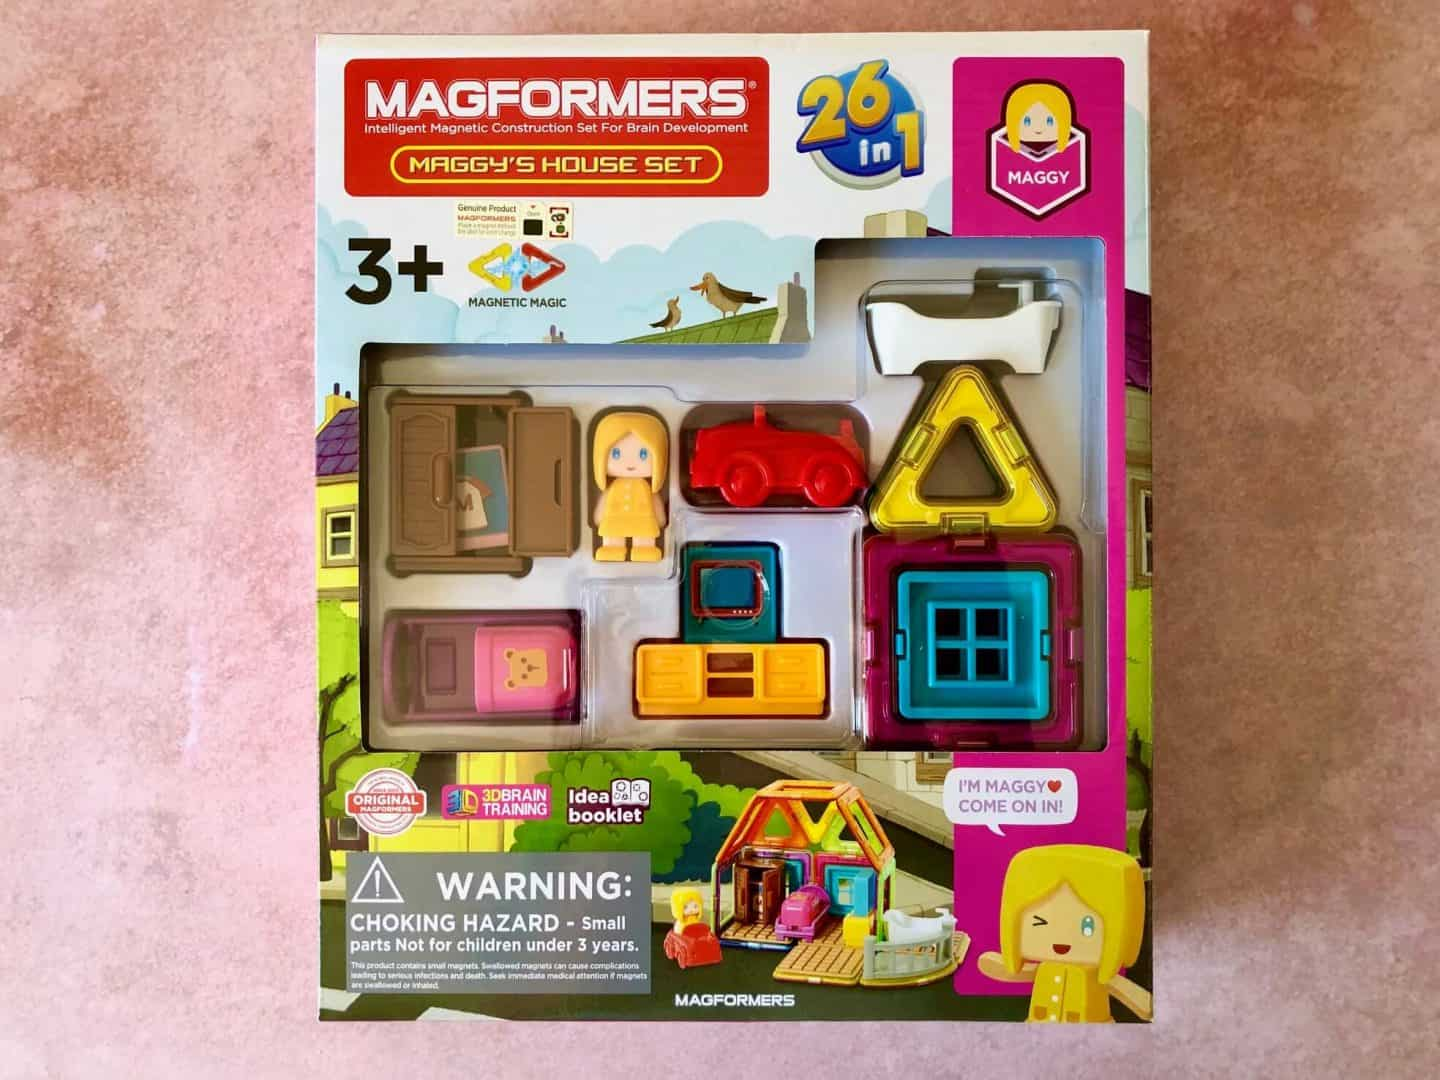 Magformers sets - Maggy's House Set